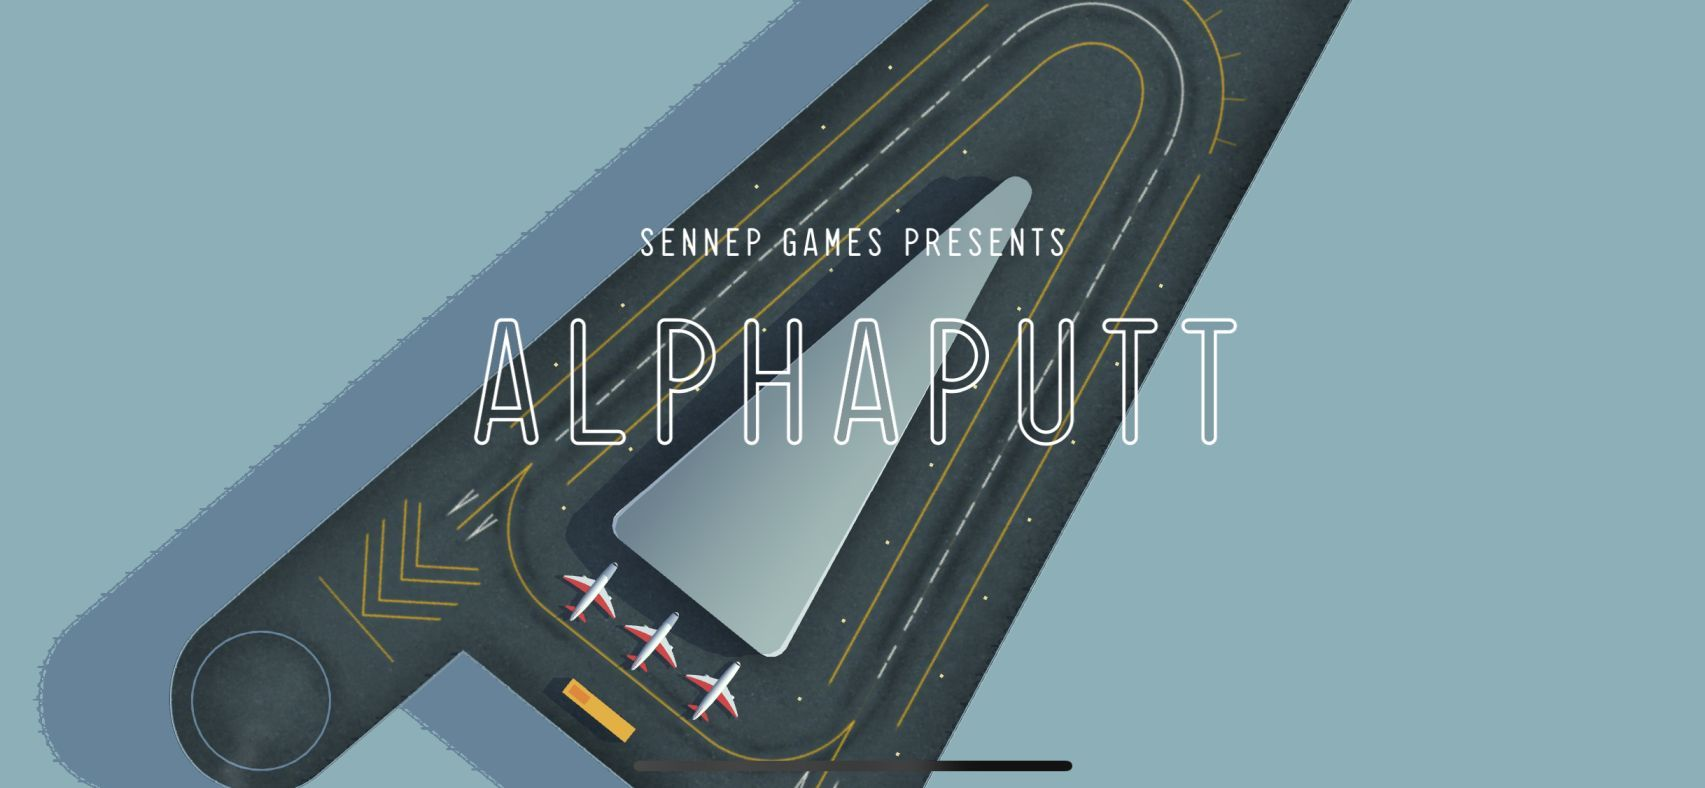 Alphaputt (copie d'écran 1 sur iPhone / iPad)